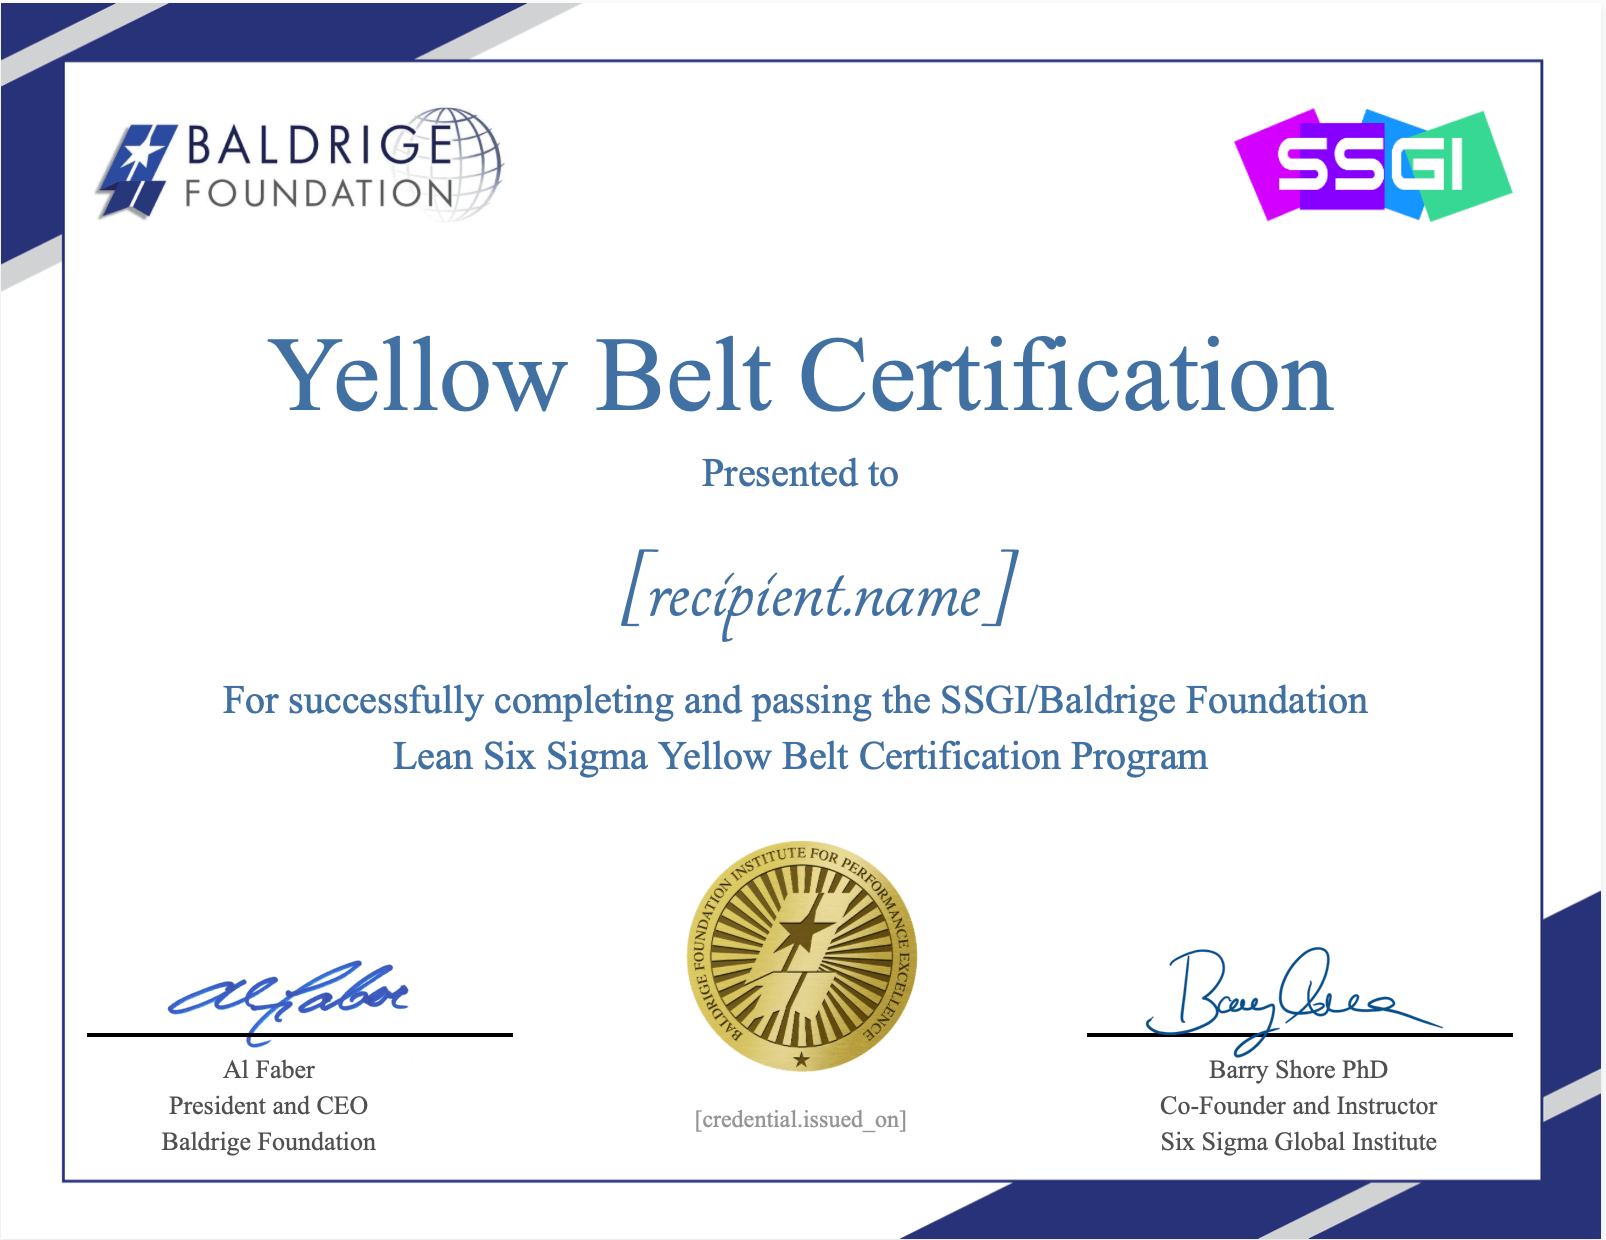 baldrige yellow belt ssgi